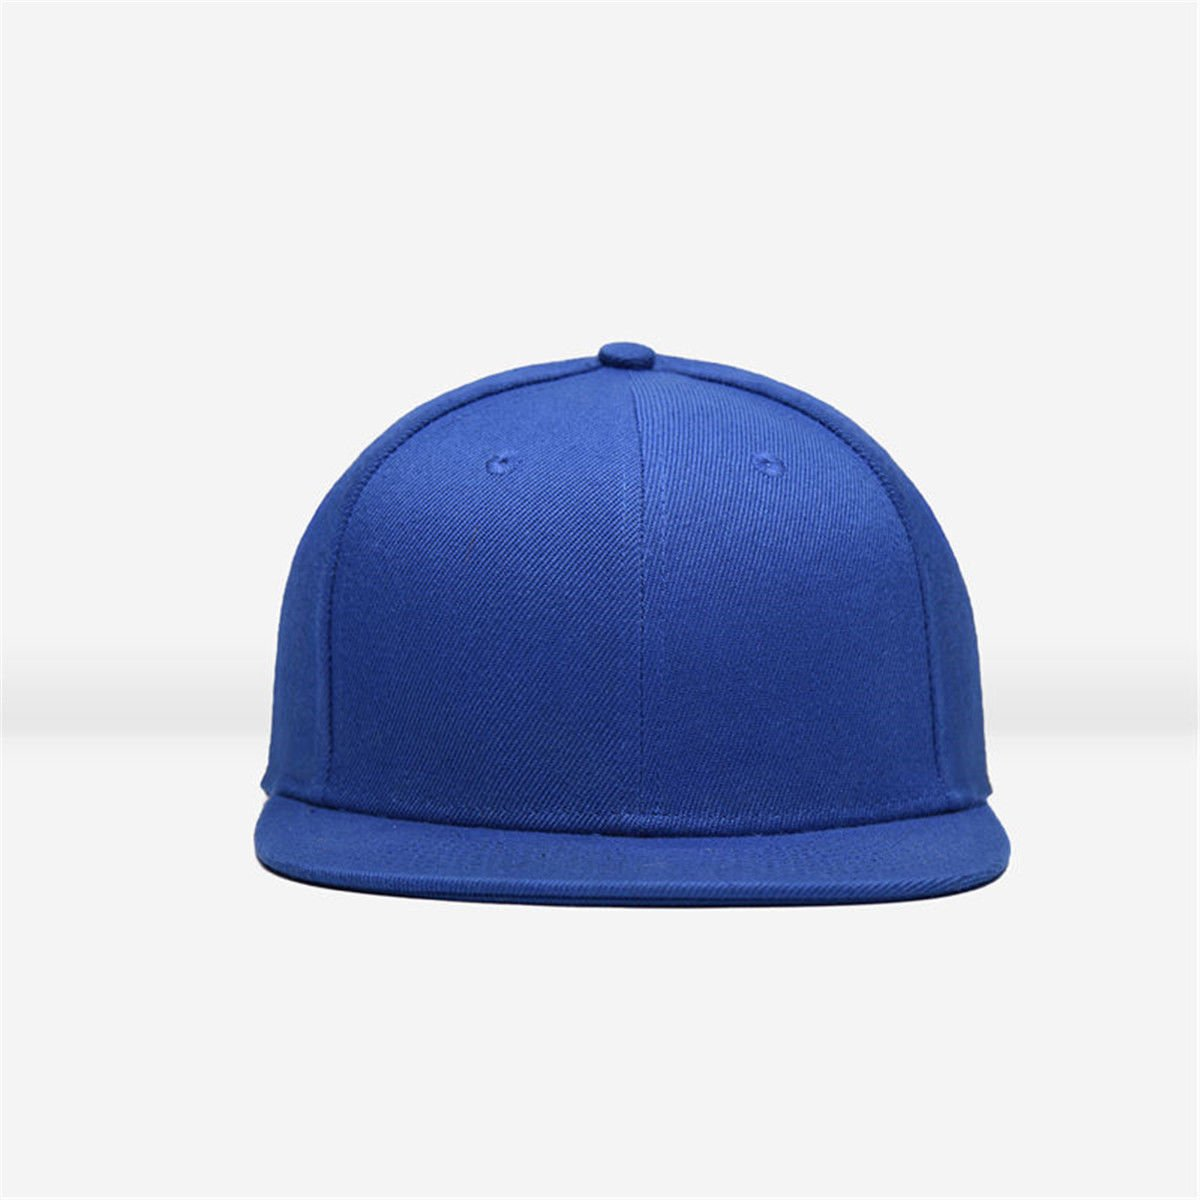 a74a6040e7e Amazon.com  2016 Fashion Men Women New Black Baseball Cap Hat Hip-Hop  Adjustable Bboy Caps (Blue)  Arts